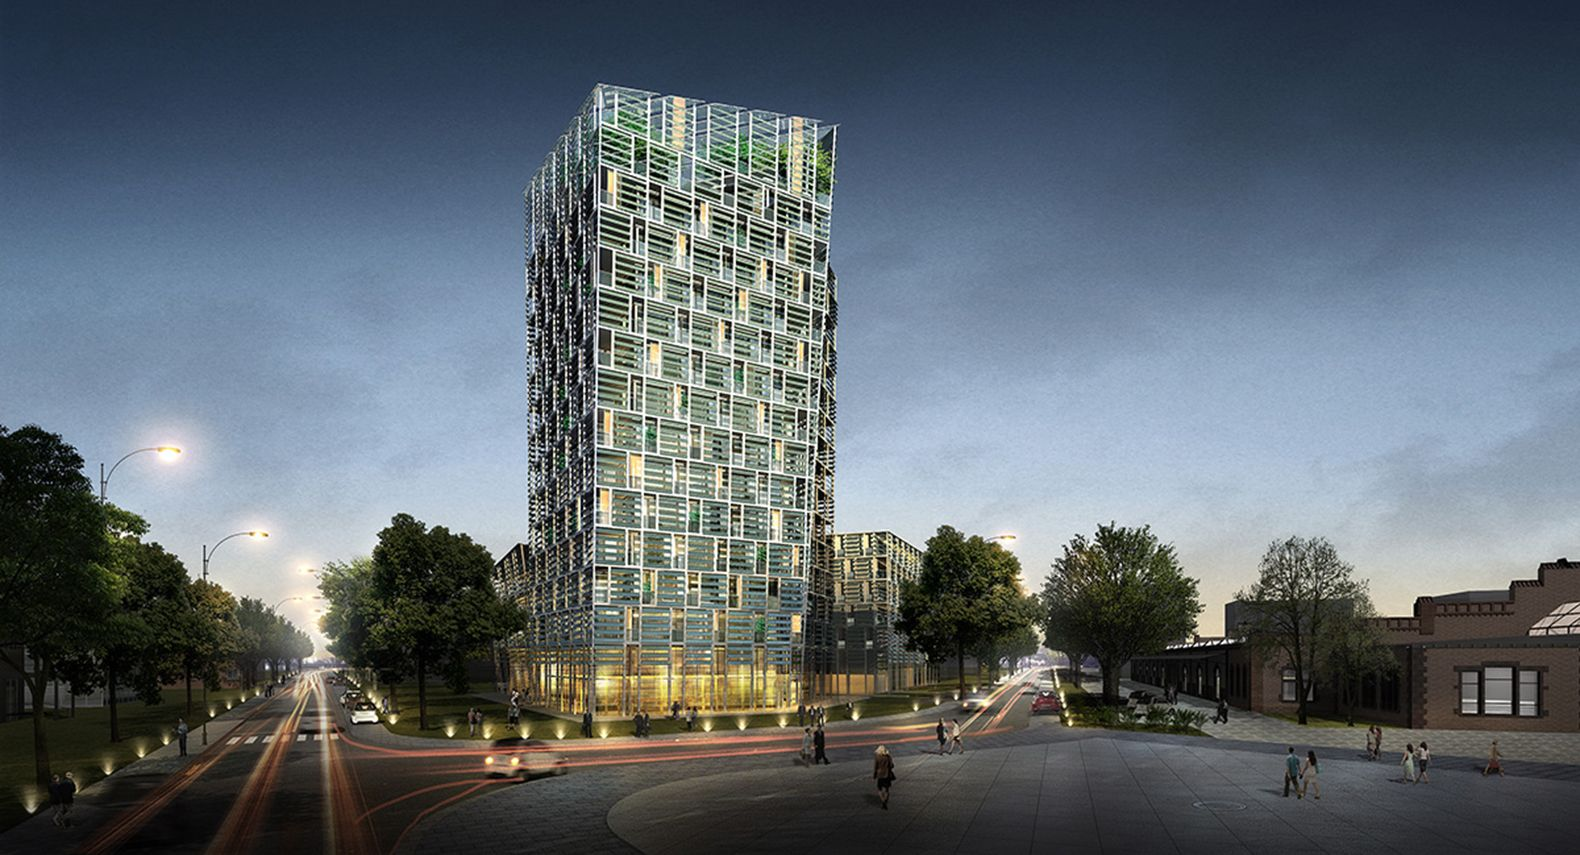 Smart Green Tower, solar-powered building, green tower, Germany, lithium-ion battery, Frey Architekten, Fraunhofer Institue for Solar Energy Systems (ISE), Siemens, green architecture, electric cars, energy storage, renewable energy sources, solar power, solar panels